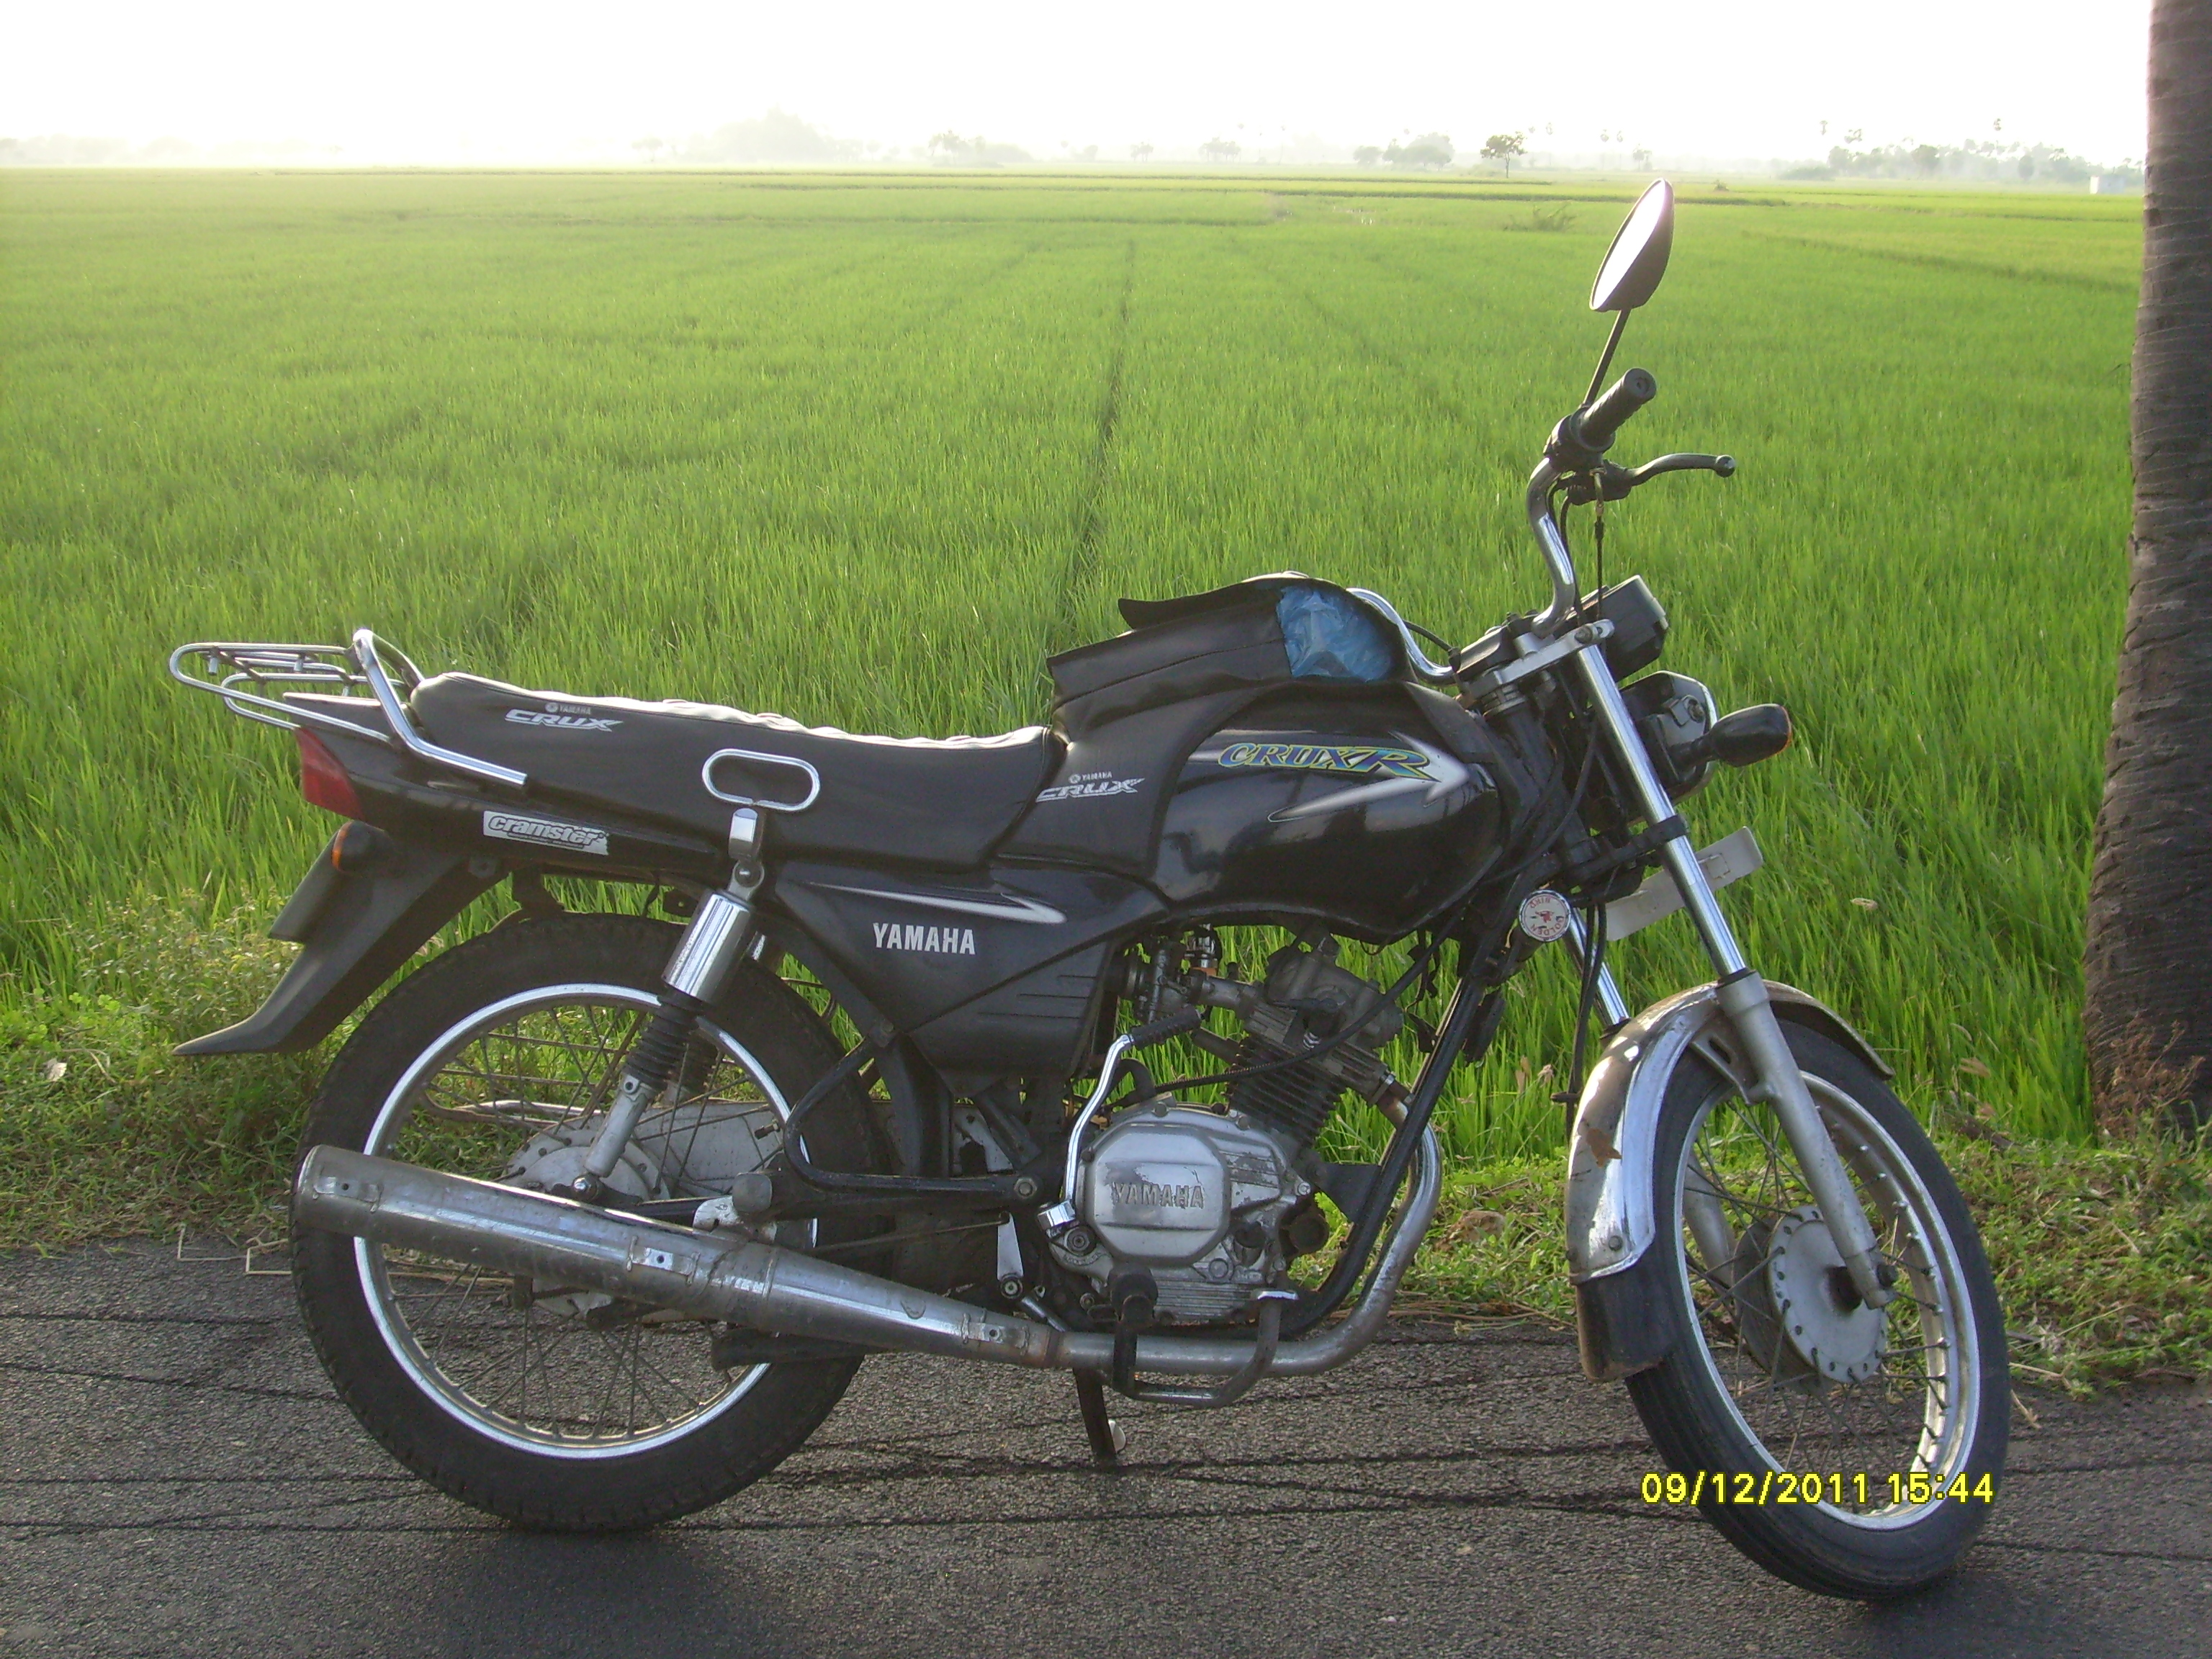 Yamaha crux photo - 8